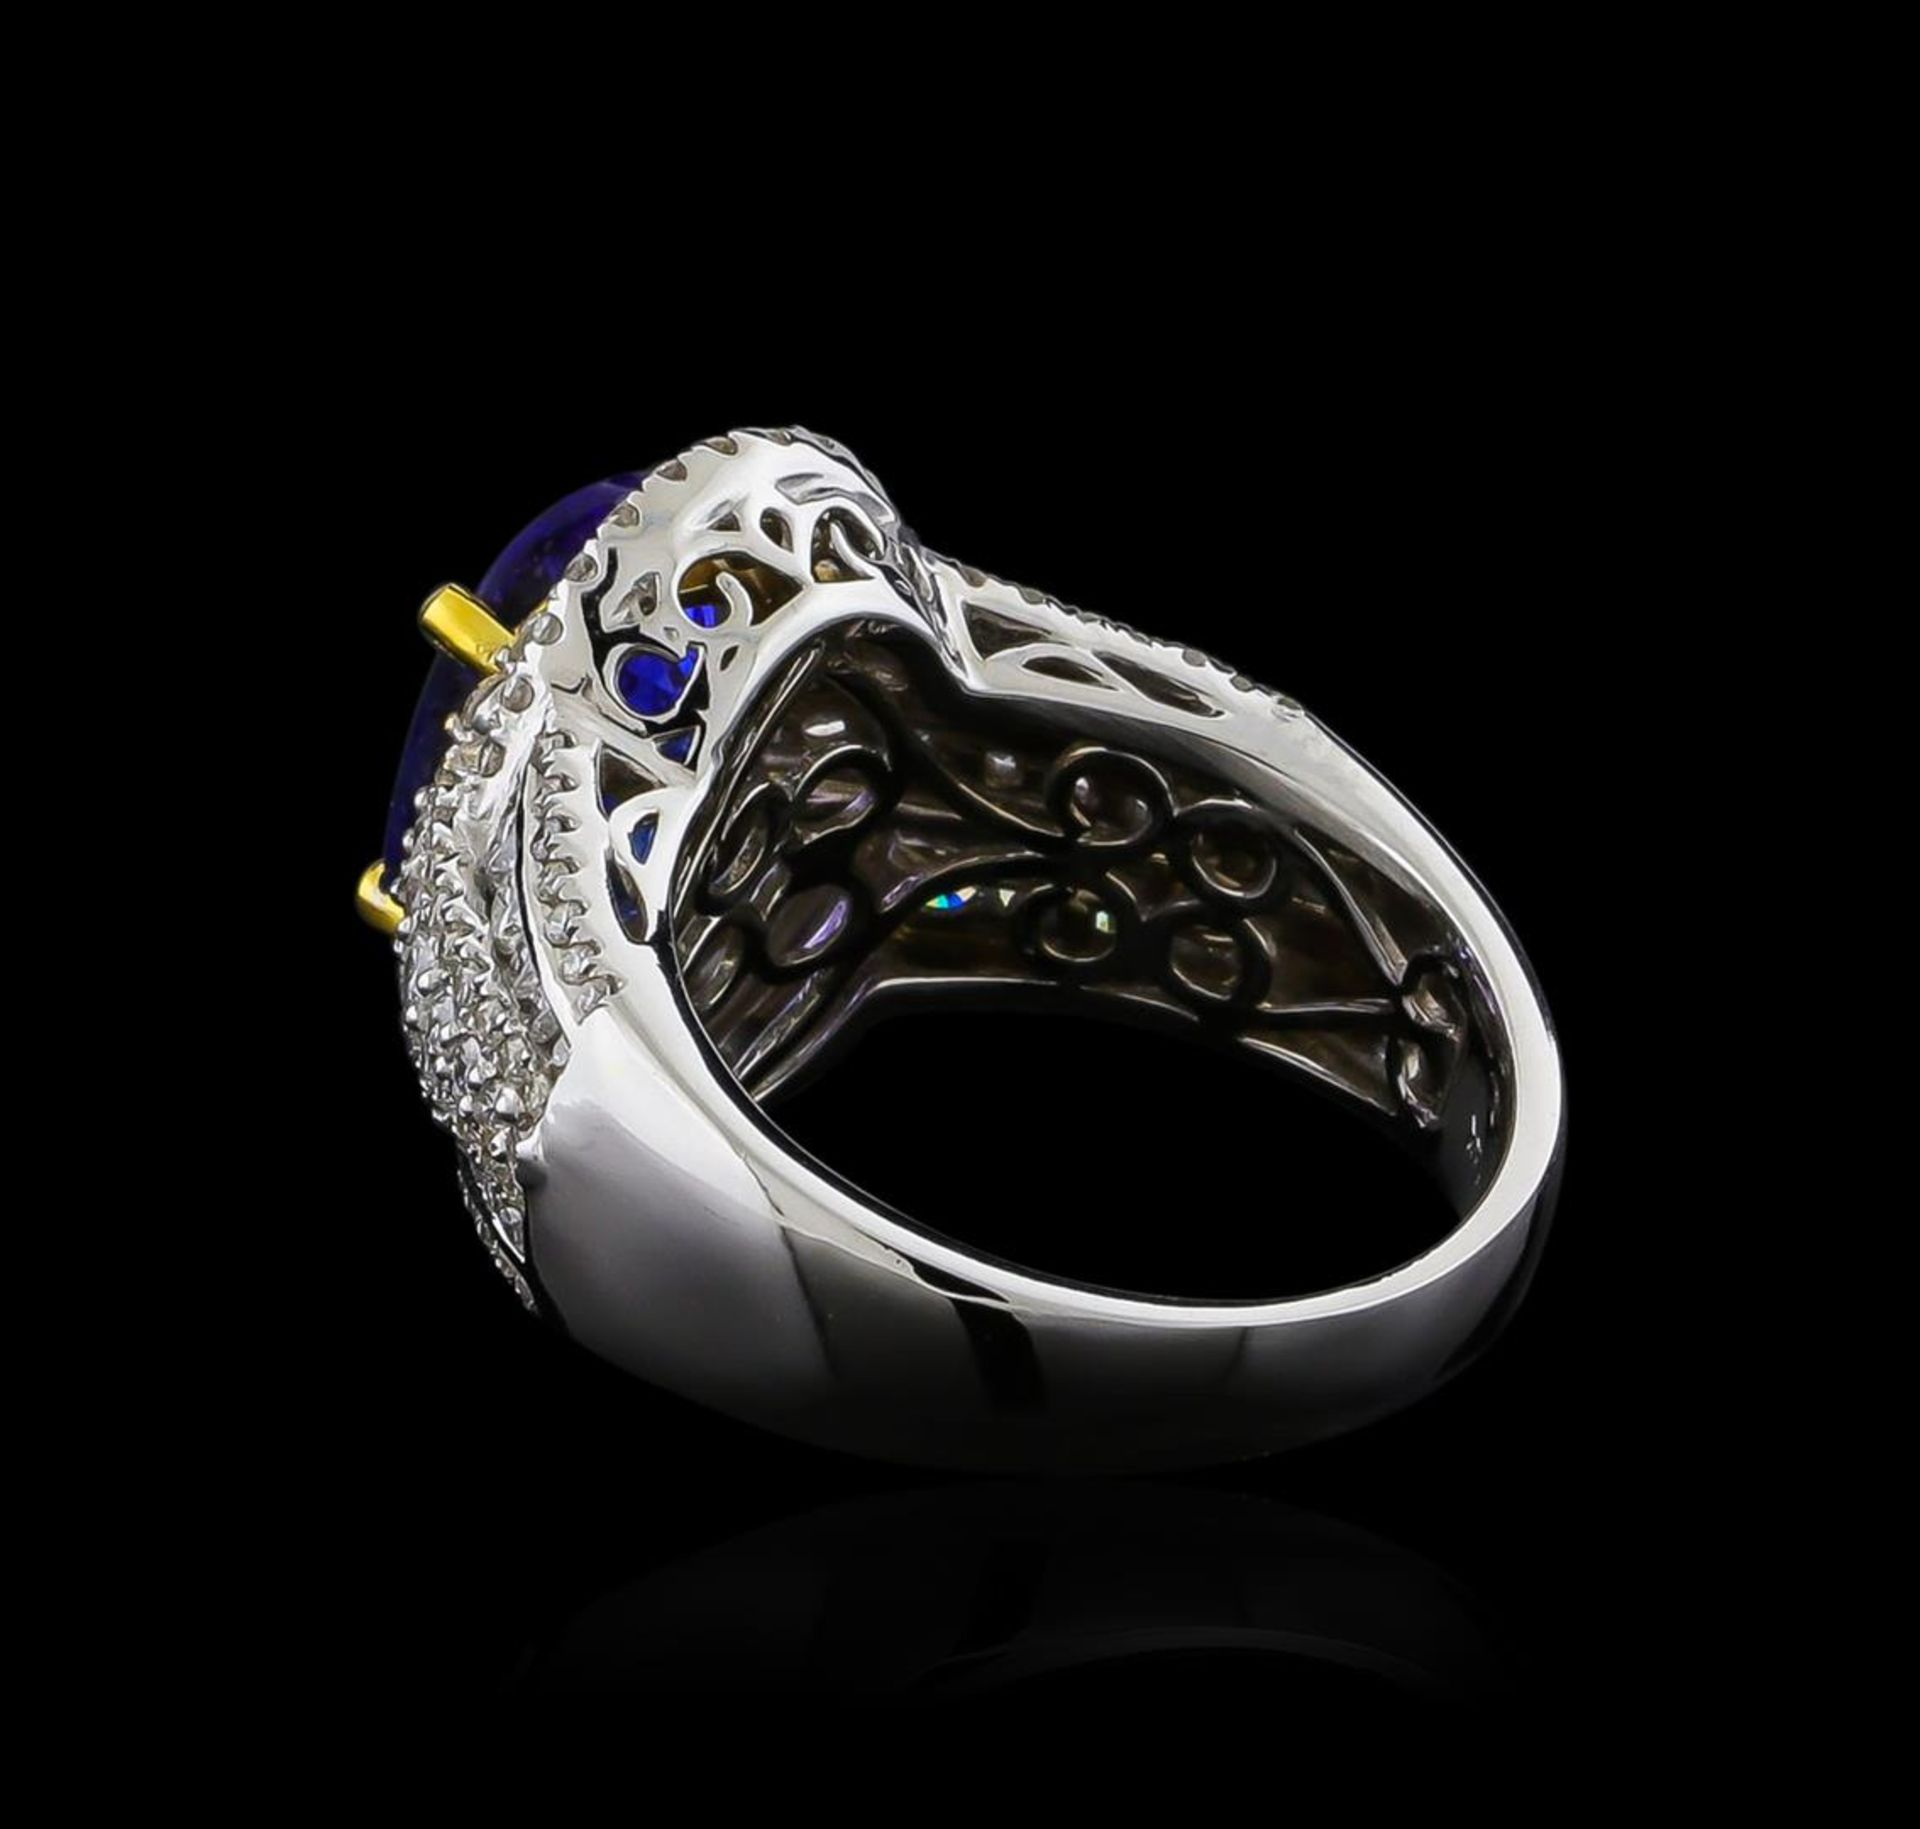 14KT Two-Tone Gold 4.12 ctw Tanzanite and Diamond Ring - Image 3 of 5